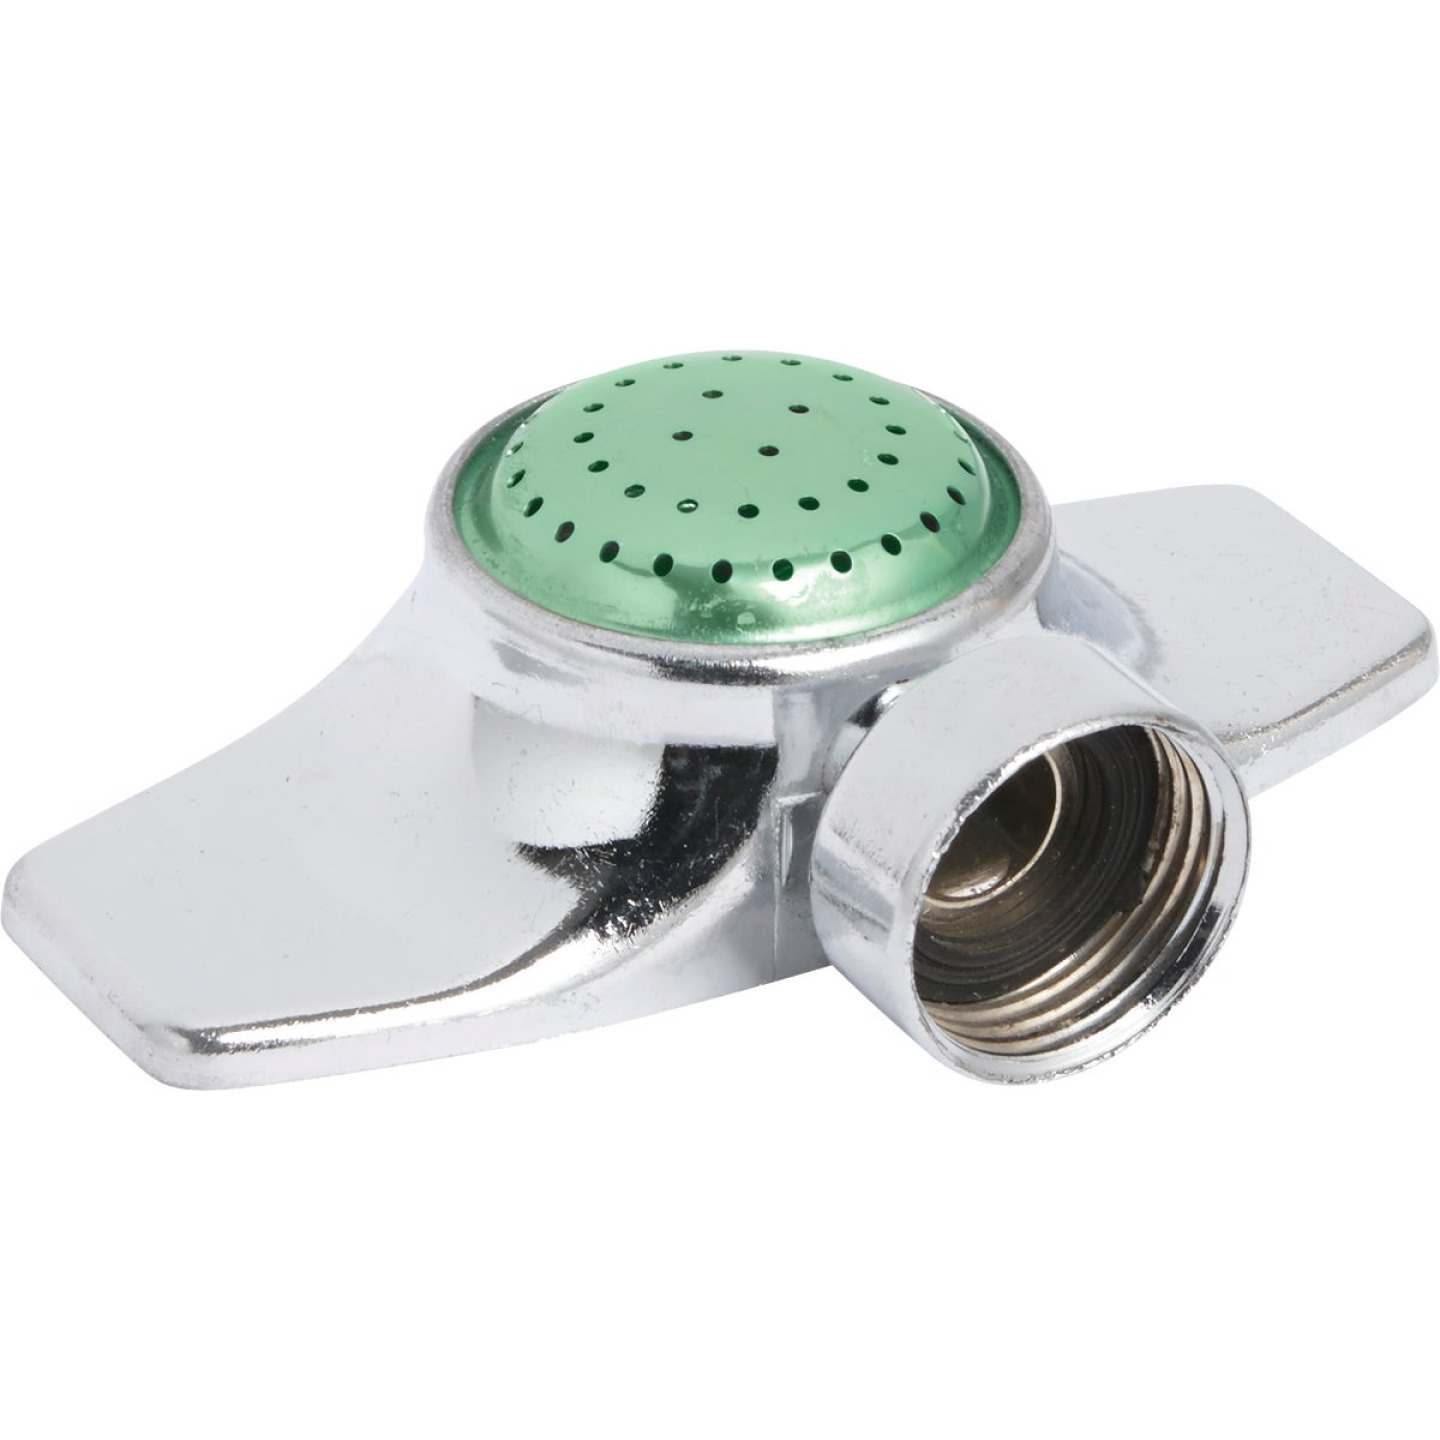 Best Garden Metal 30 Ft. Dia. Spot Stationary Sprinkler, Metallic & Green Image 1